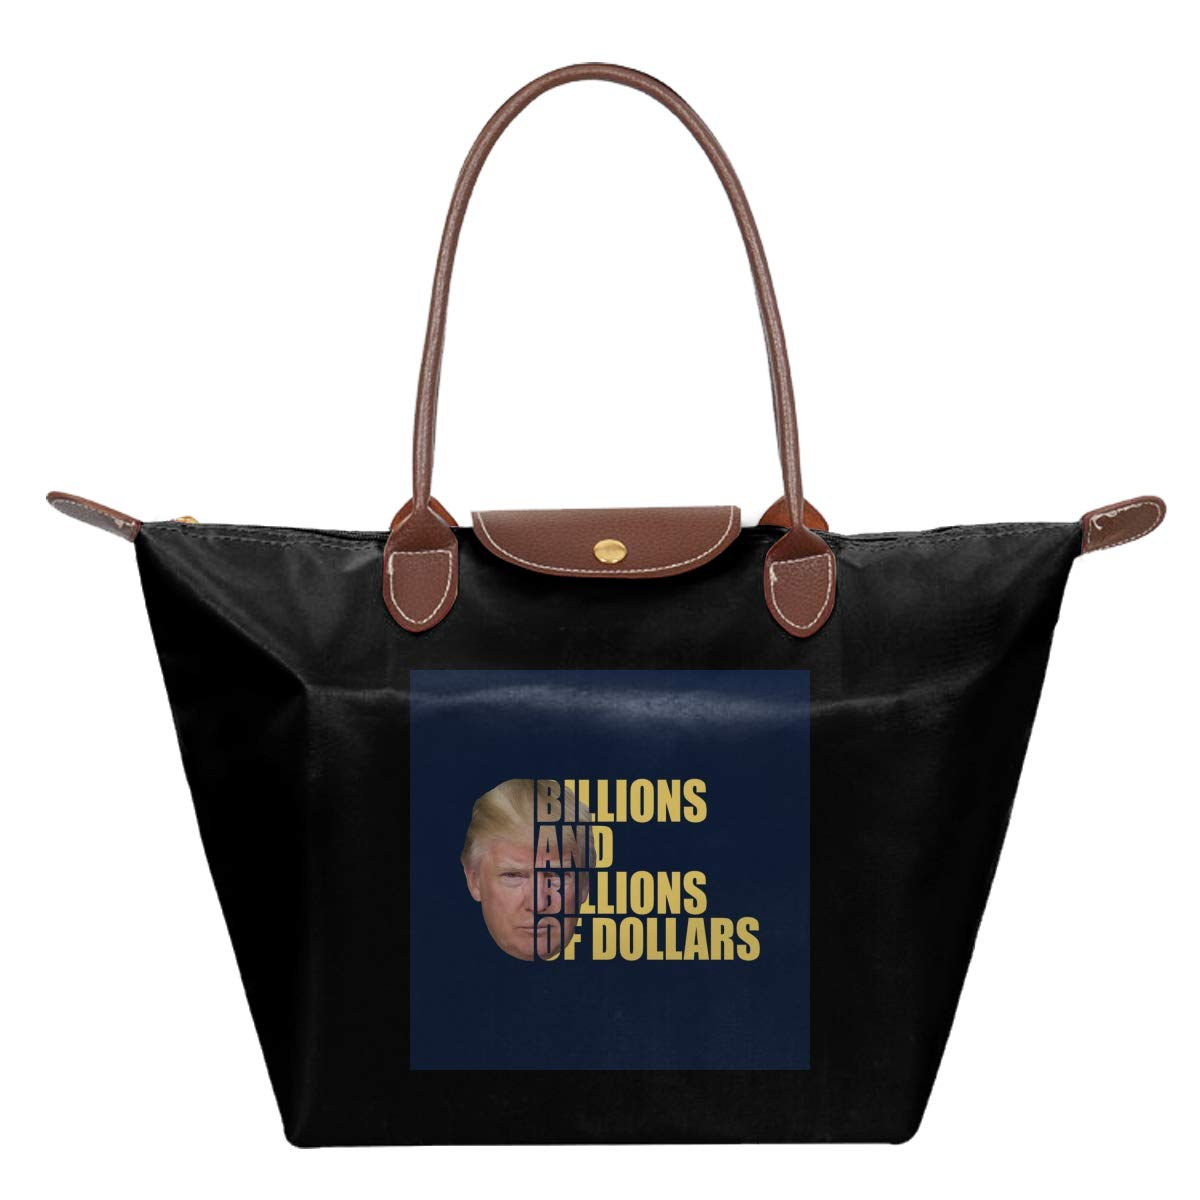 Donald Trump Half Head Text Waterproof Leather Folded Messenger Nylon Bag Travel Tote Hopping Folding School Handbags